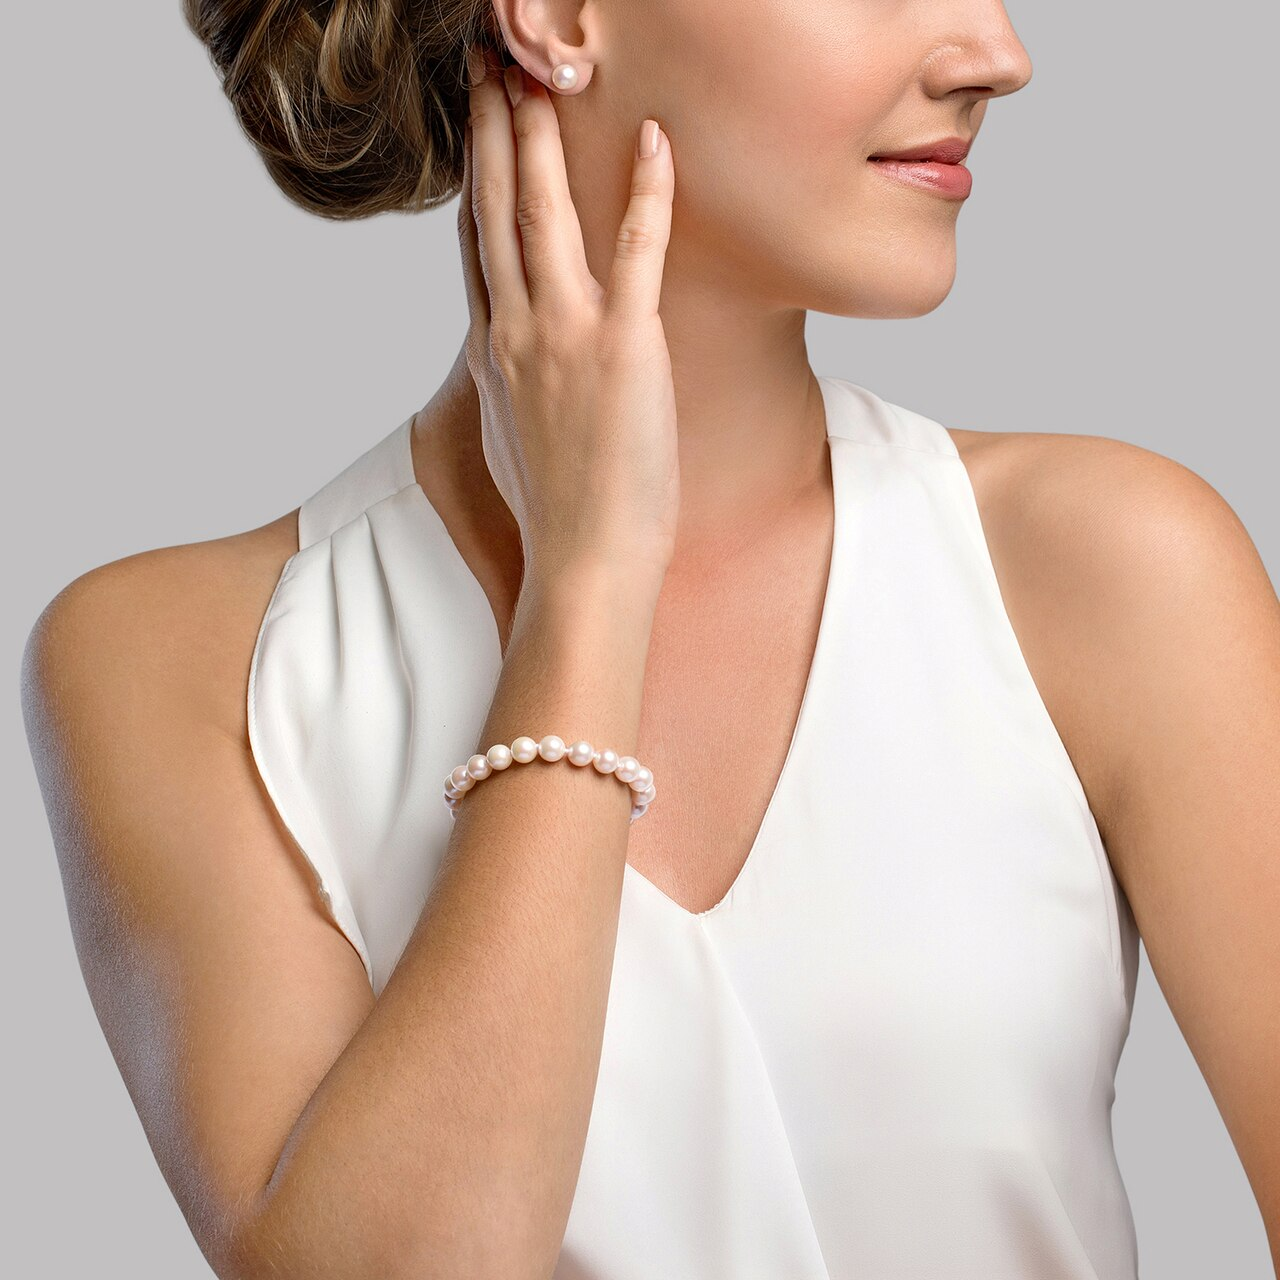 This elegant bracelet features 8.0-8.5mm Japanese Akoya pearls, handpicked for their luminous luster